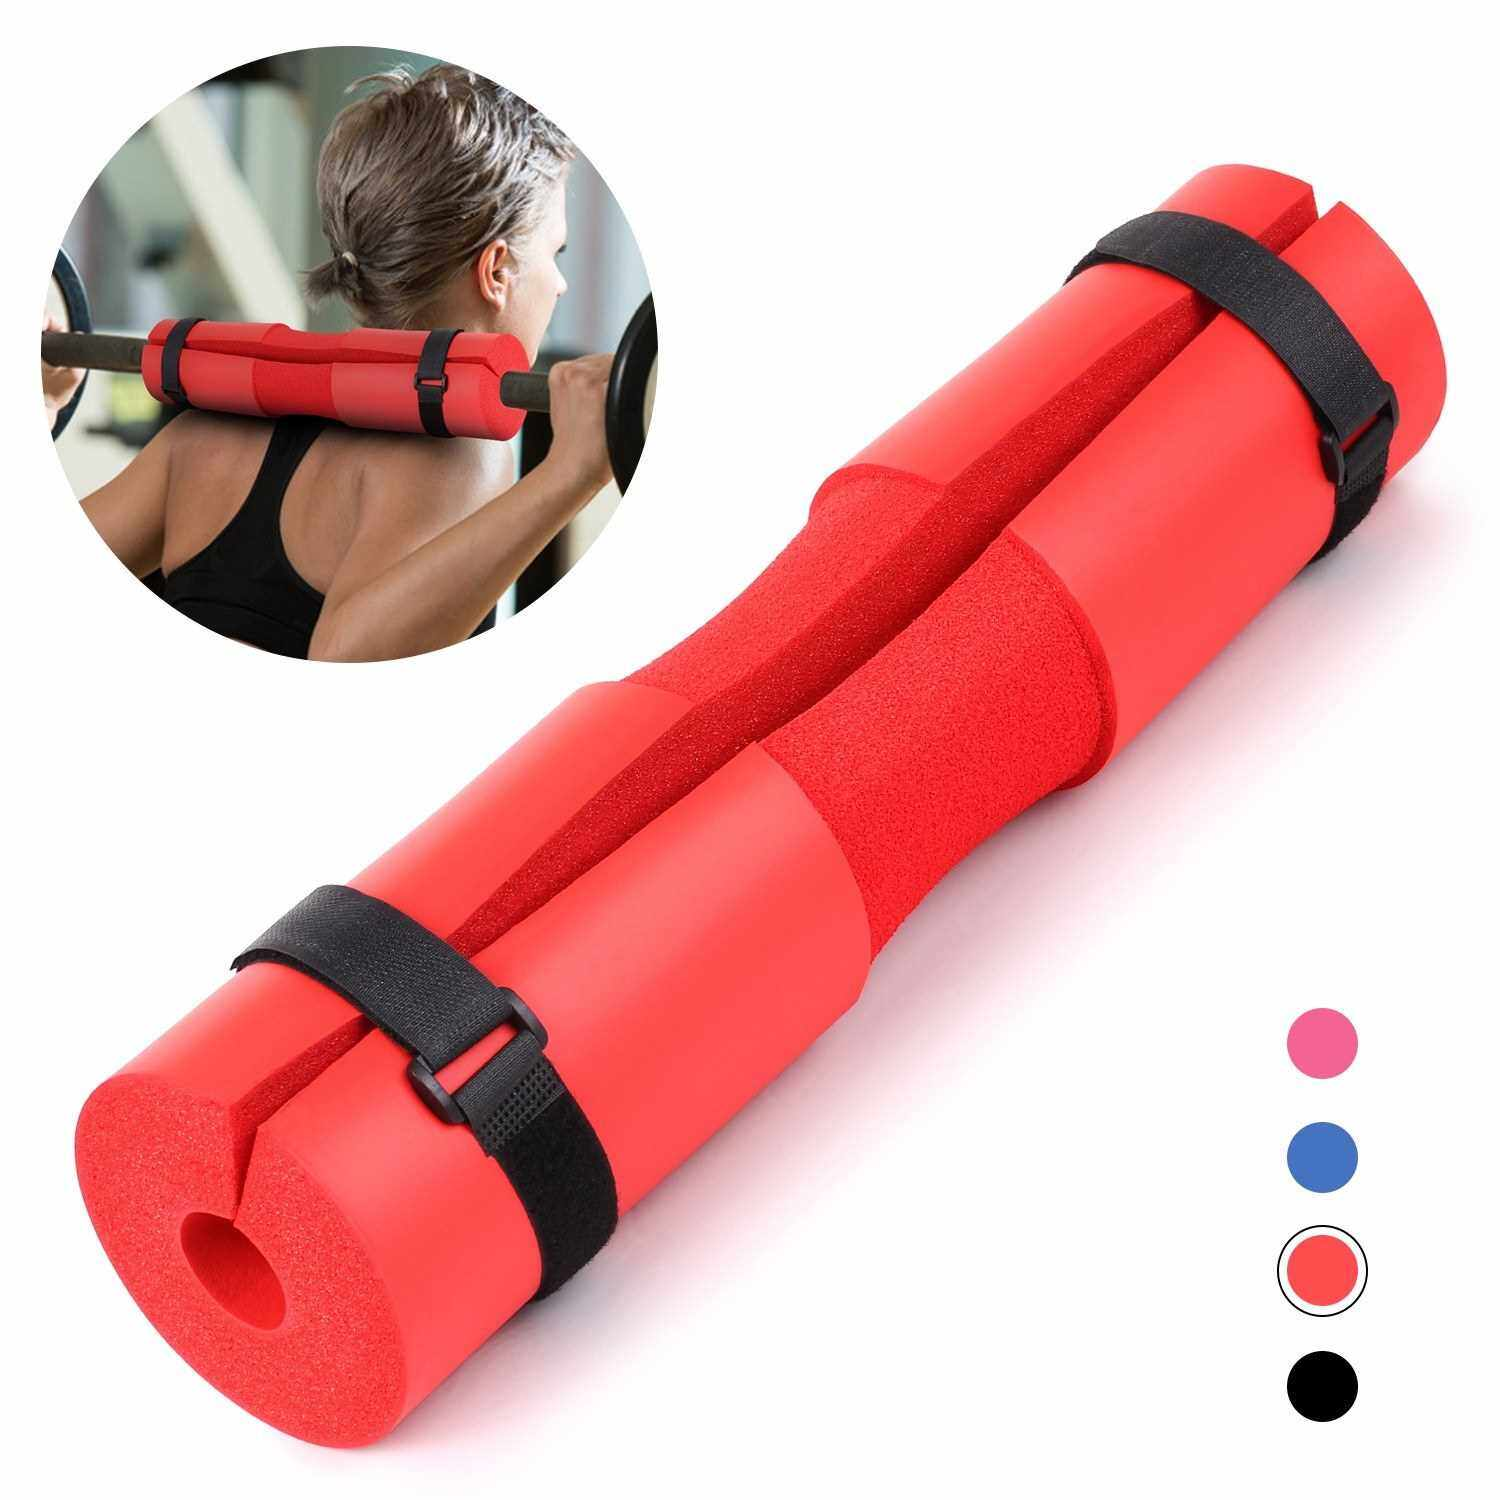 Barbell Squat Pad Neck Shoulder Protective Pad Support with Fixing Straps for Squats Lunges Hip Thrusts Weight Lifting Bar Pad (Red)